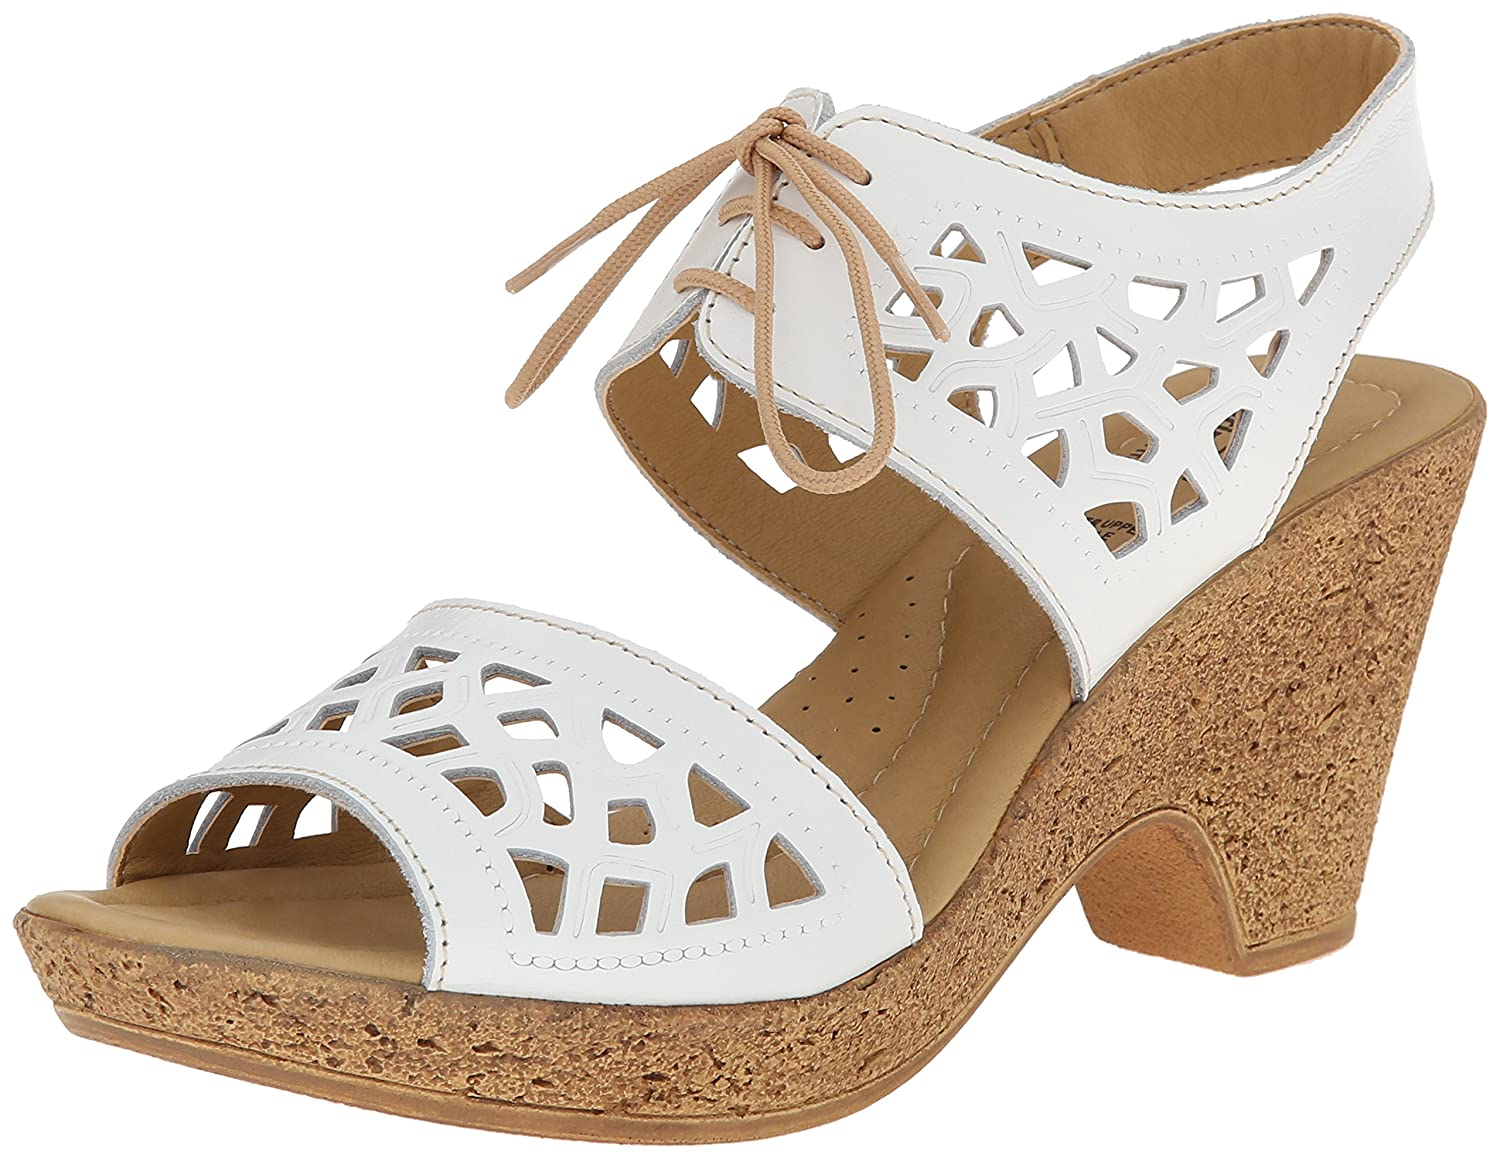 Spring Step Women's Lamay Dress Sandal B00PBU6G3E 39 M EU / 8.5 B(M) US|White